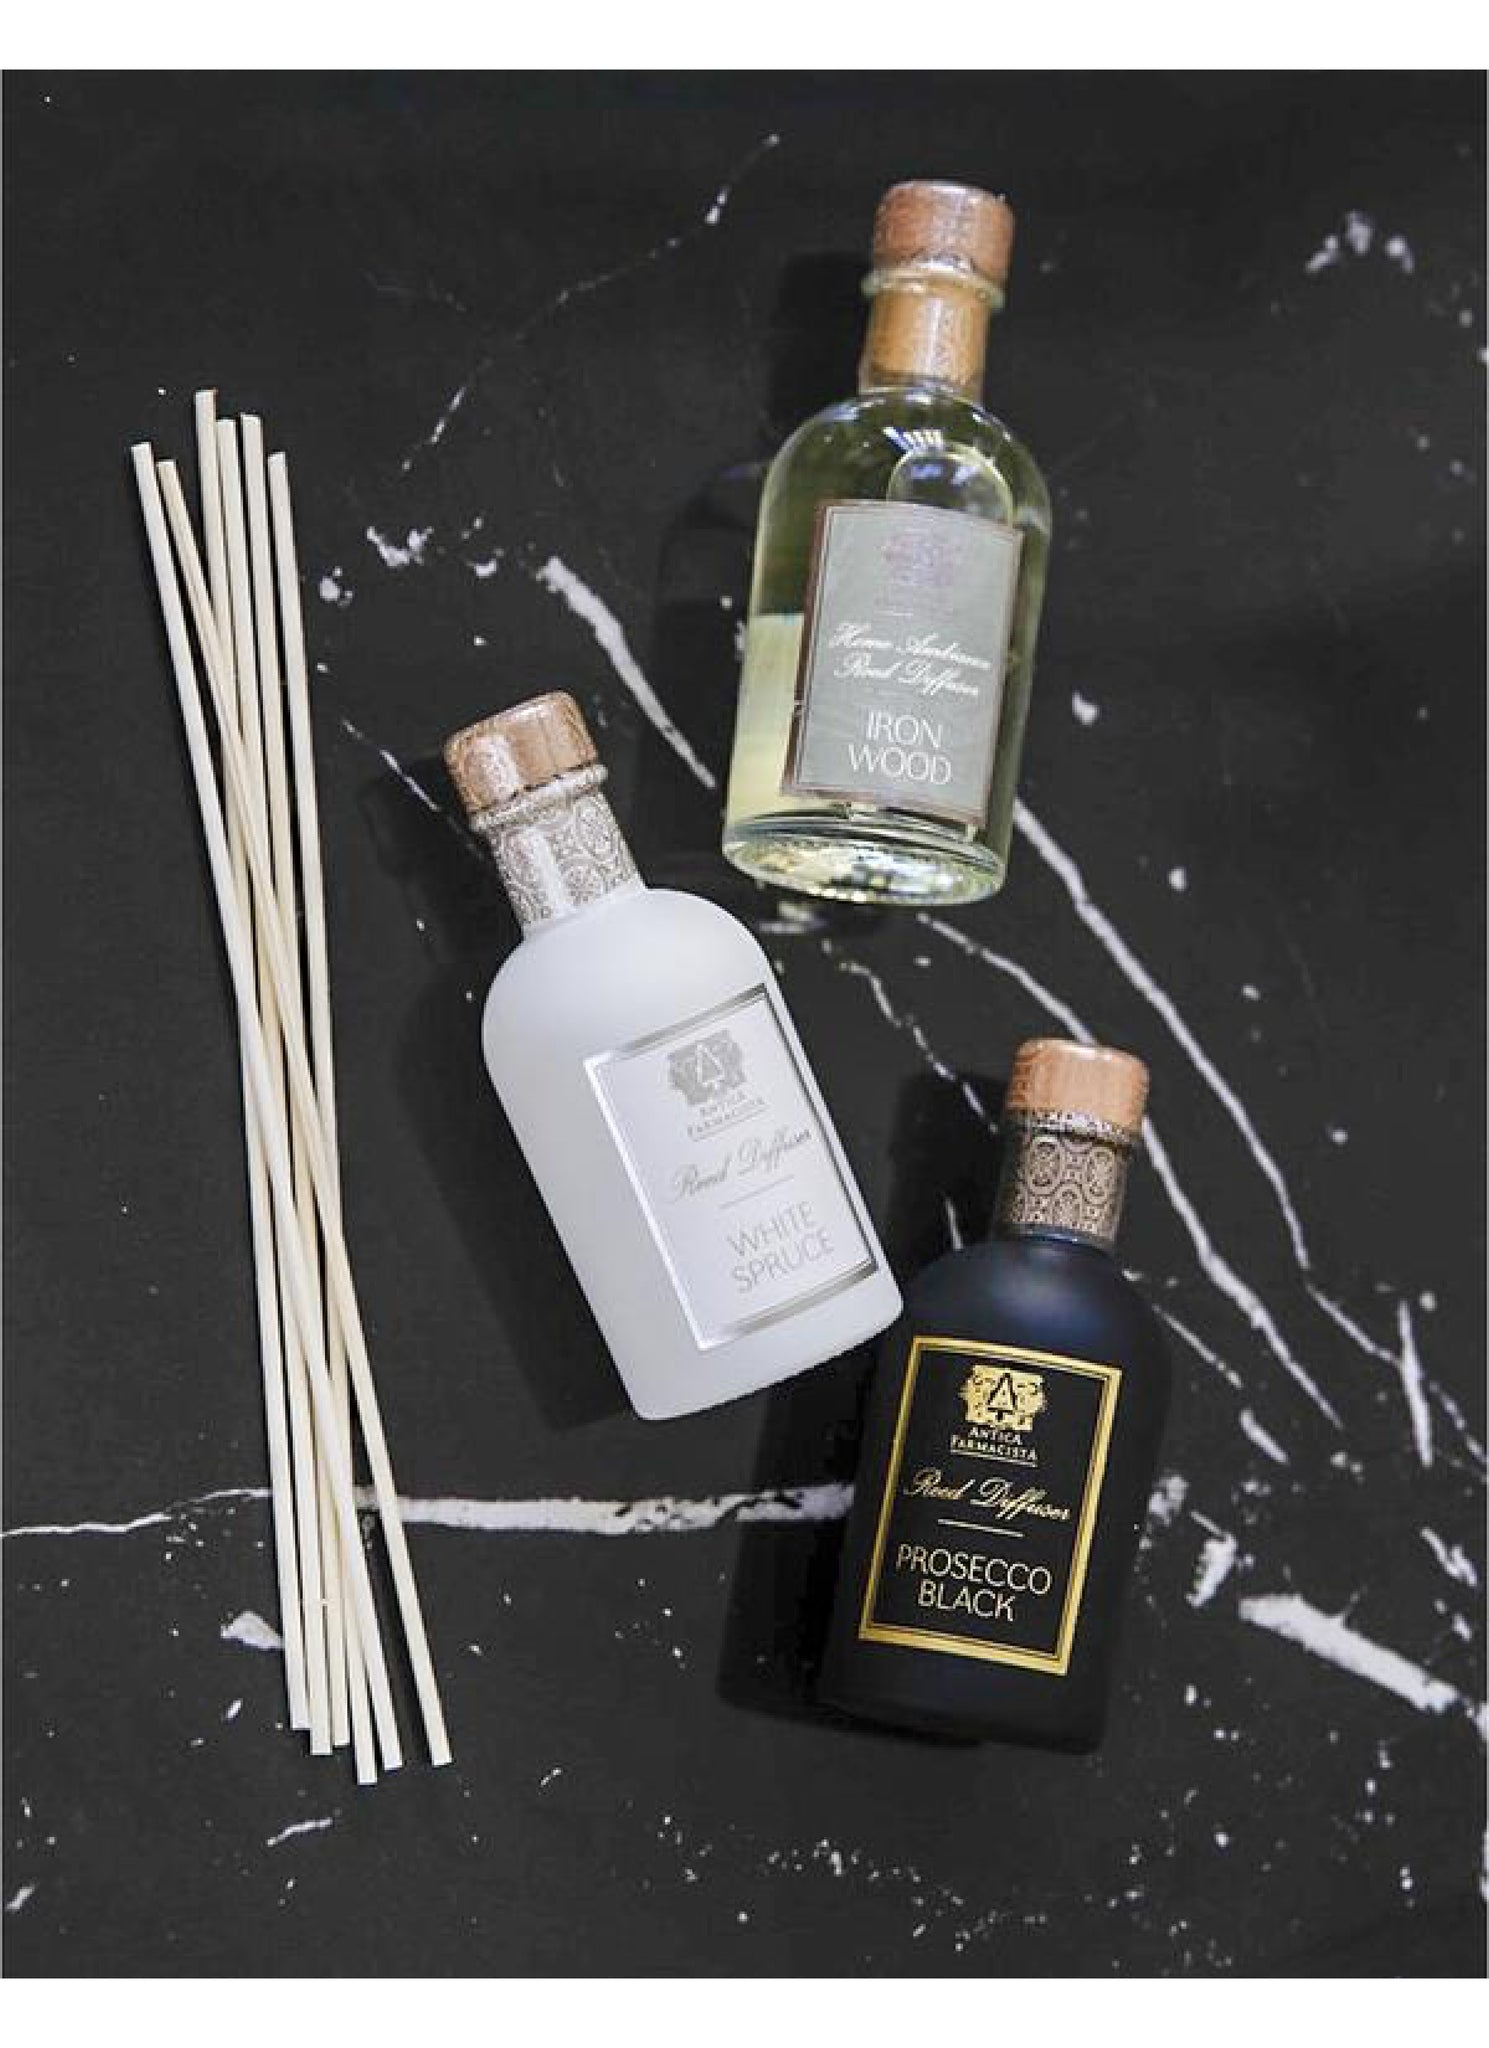 Holiday Diffuser Trio. Ironwood, White Spruce and Prosecco Black